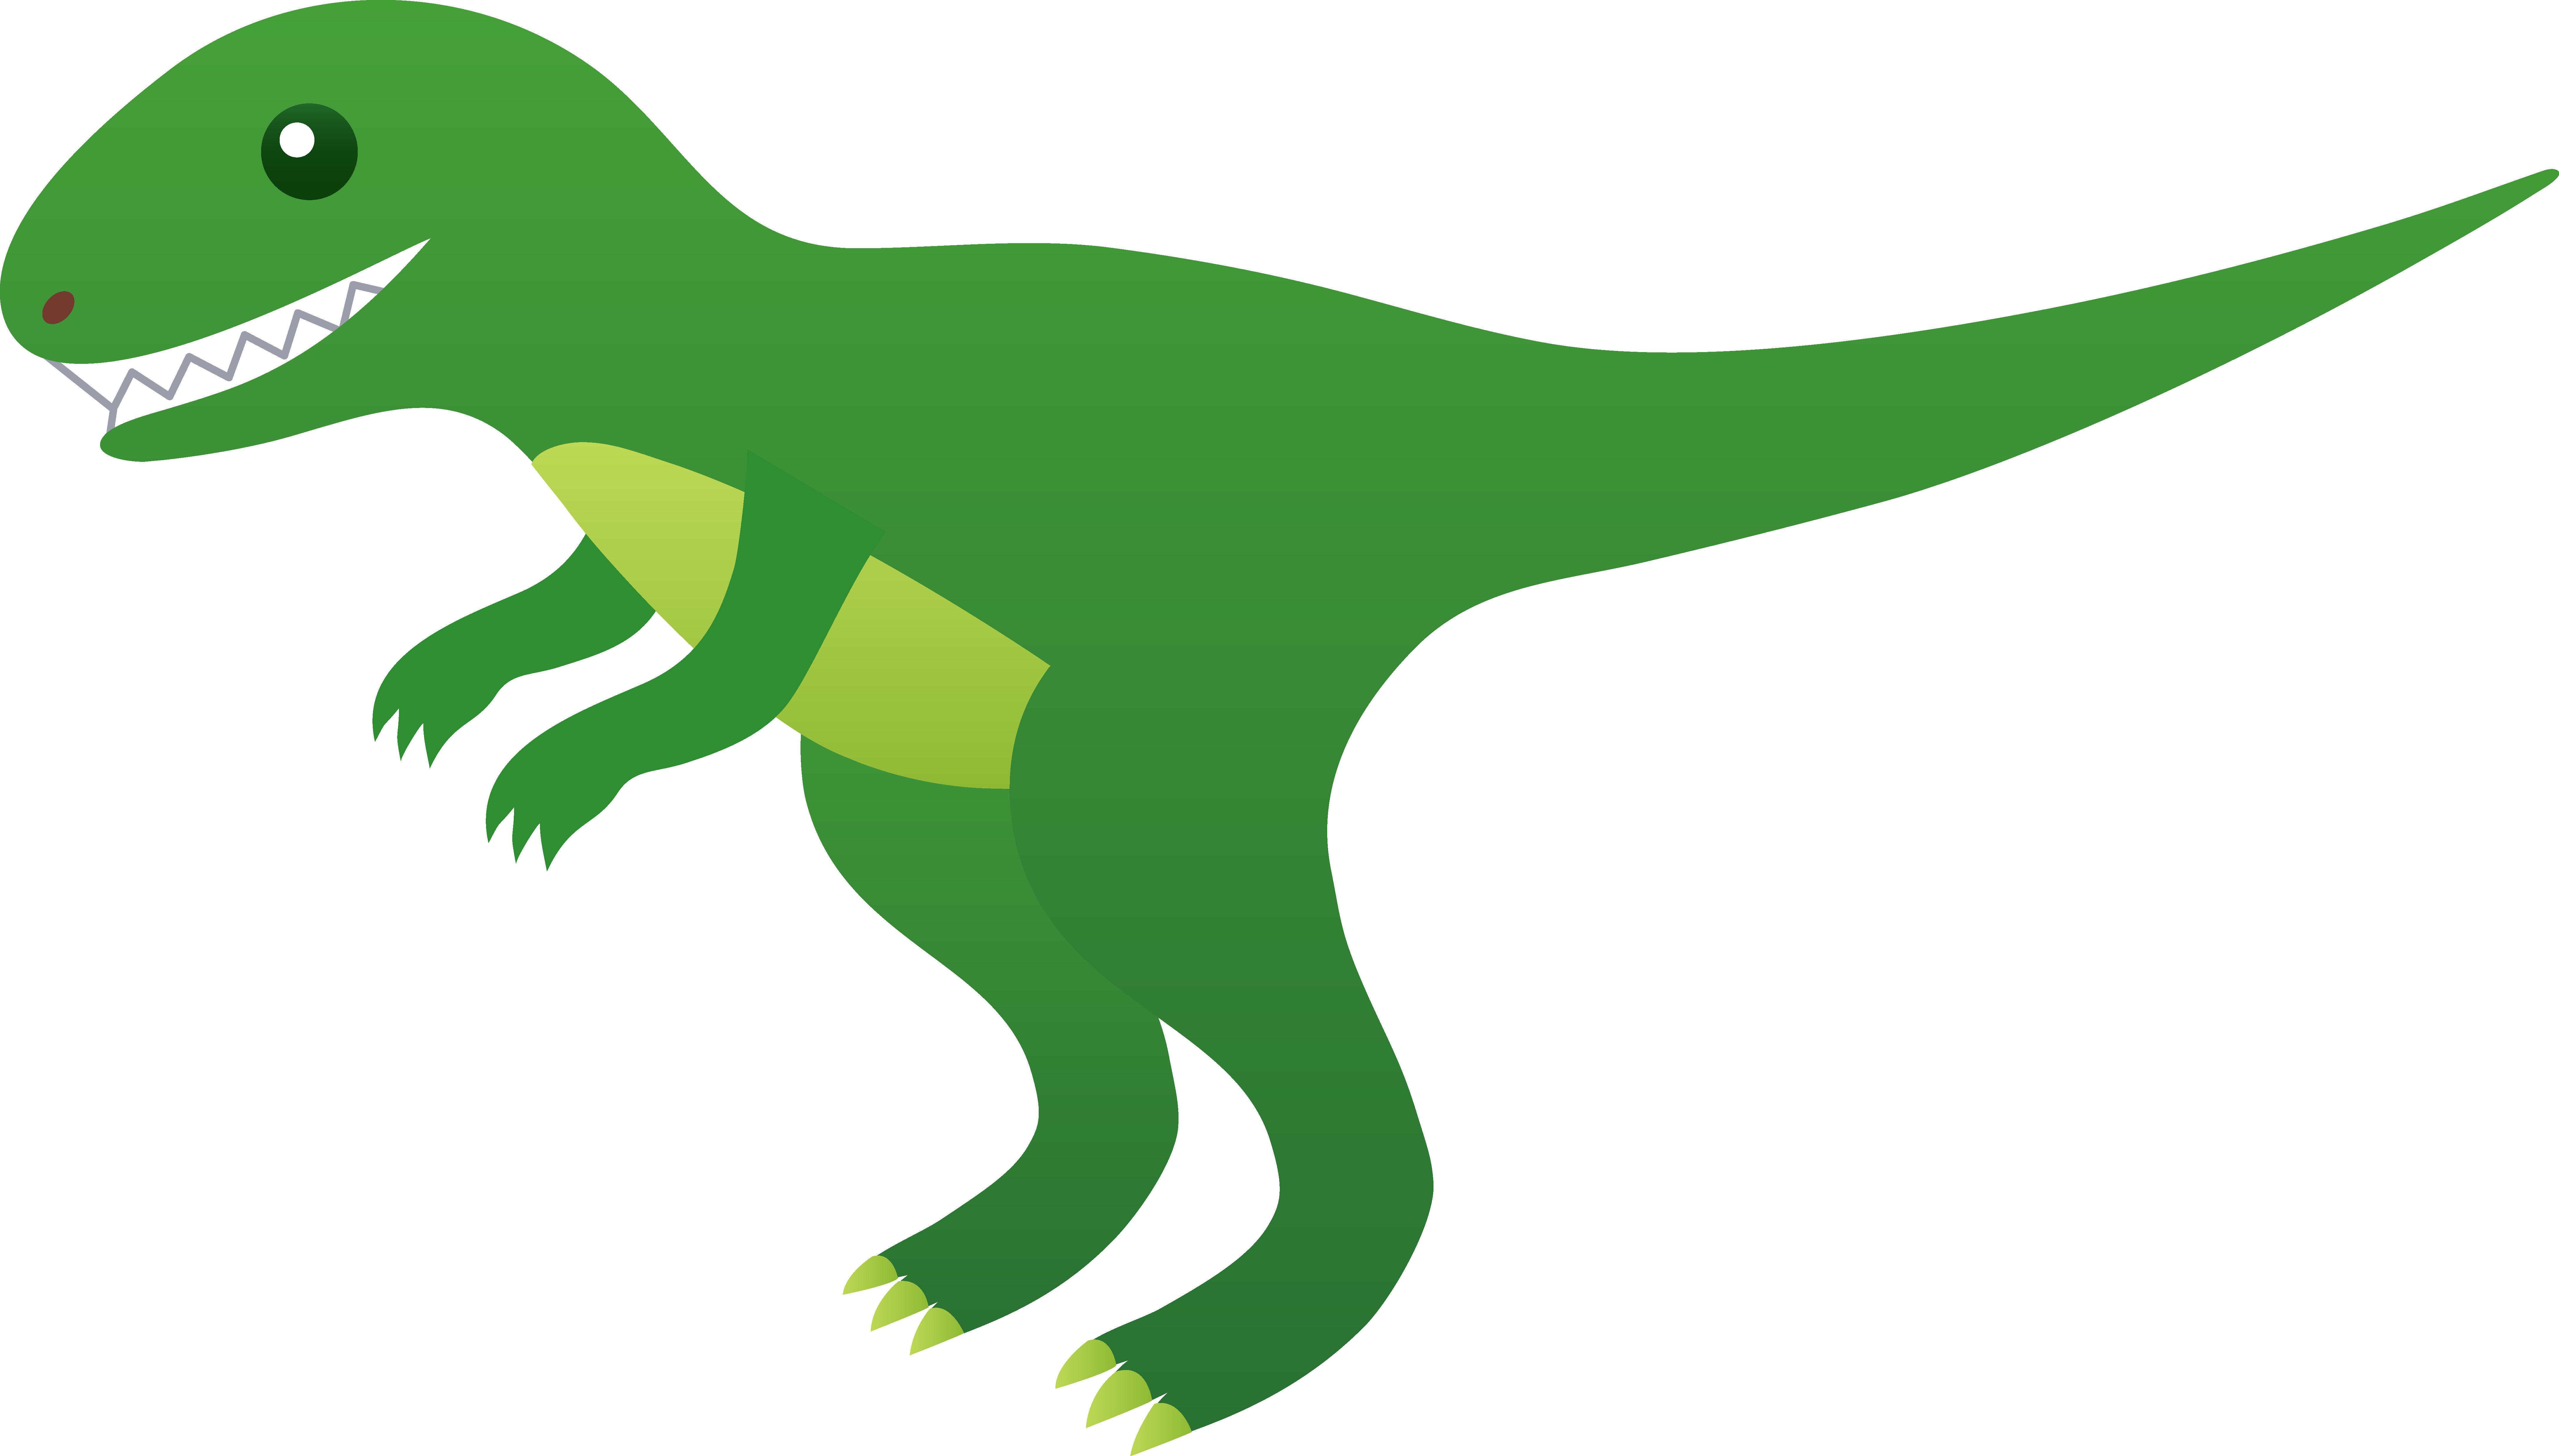 Dead cliparthot of t. Dinosaur clipart tail